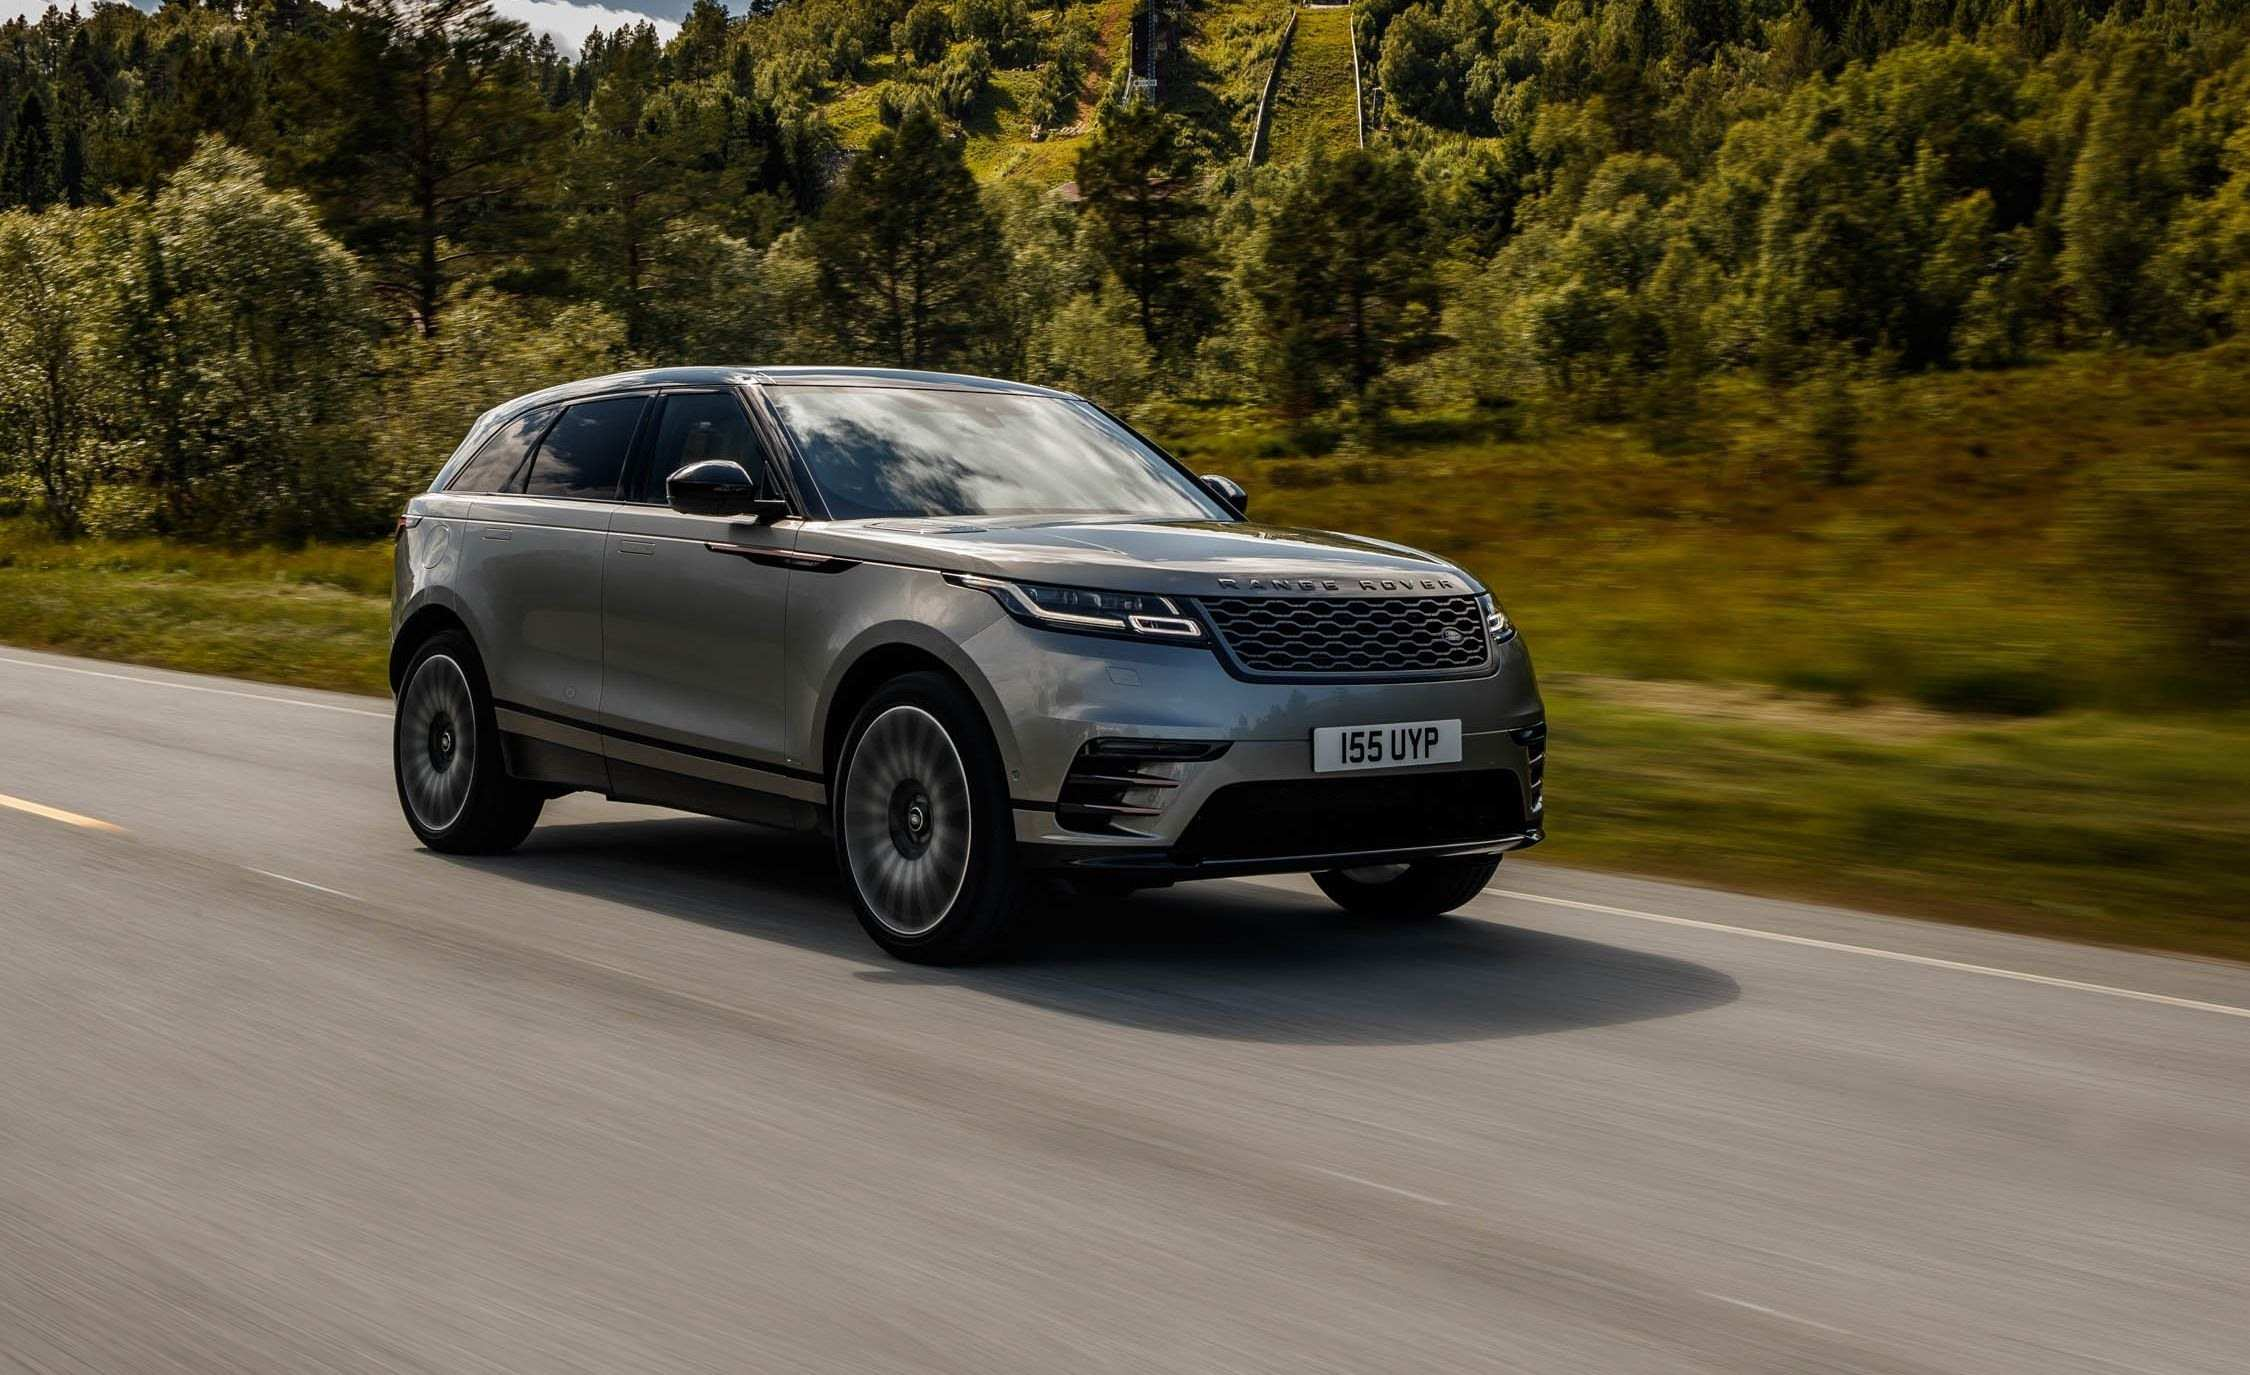 91 New 2020 Range Rover Evoque Xl Style for 2020 Range Rover Evoque Xl